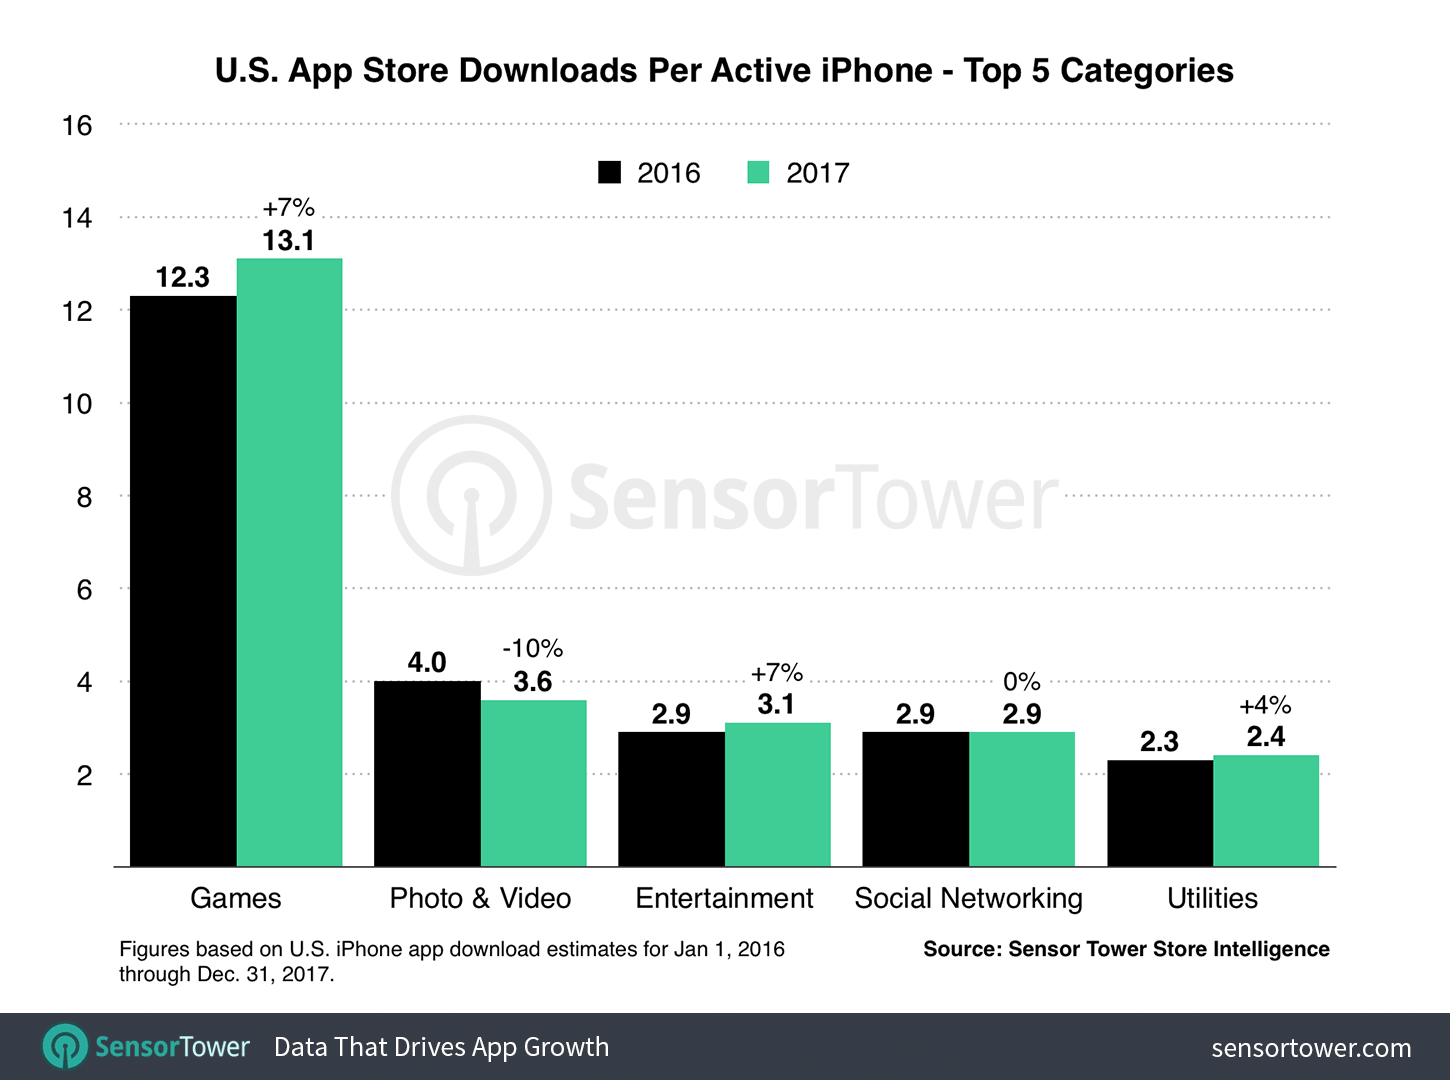 iPhone Per Active Device Average Downloads U.S. 2017